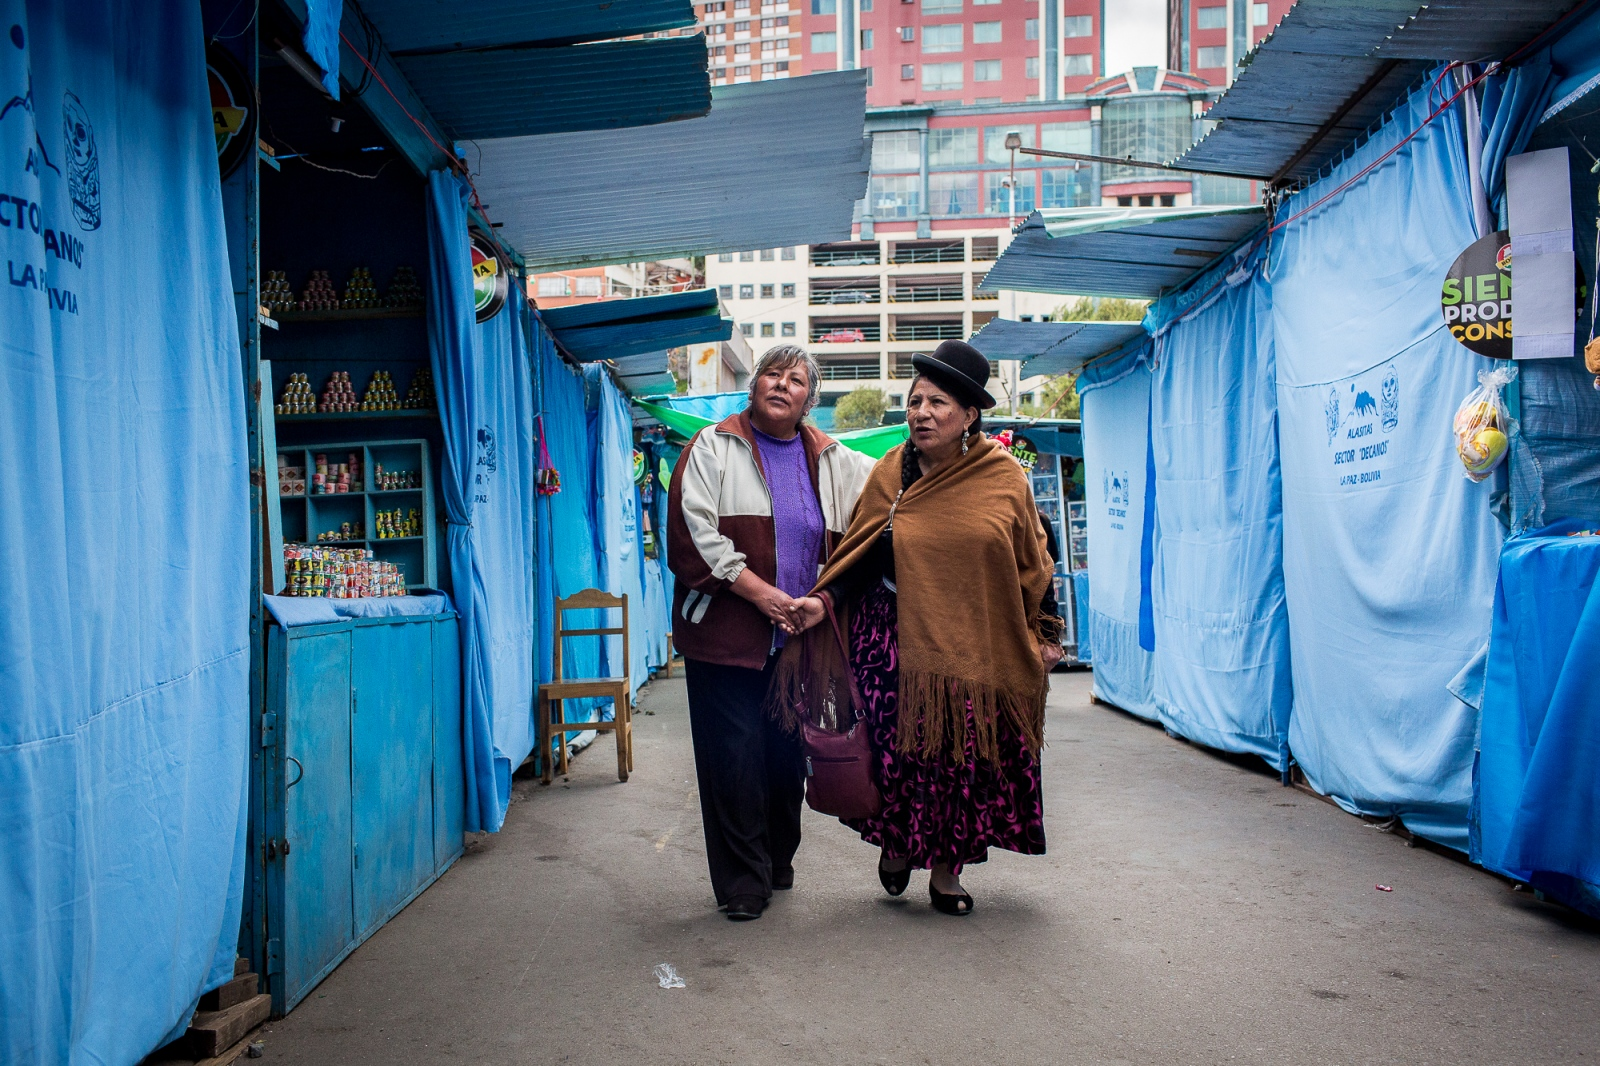 Remedios Loza walks with an admirer through an alley of the Alasitas handicraft market, La Paz. Comadre Remedios as Loza is known is revered by other women and consider a pioneer for indigenous women rights.